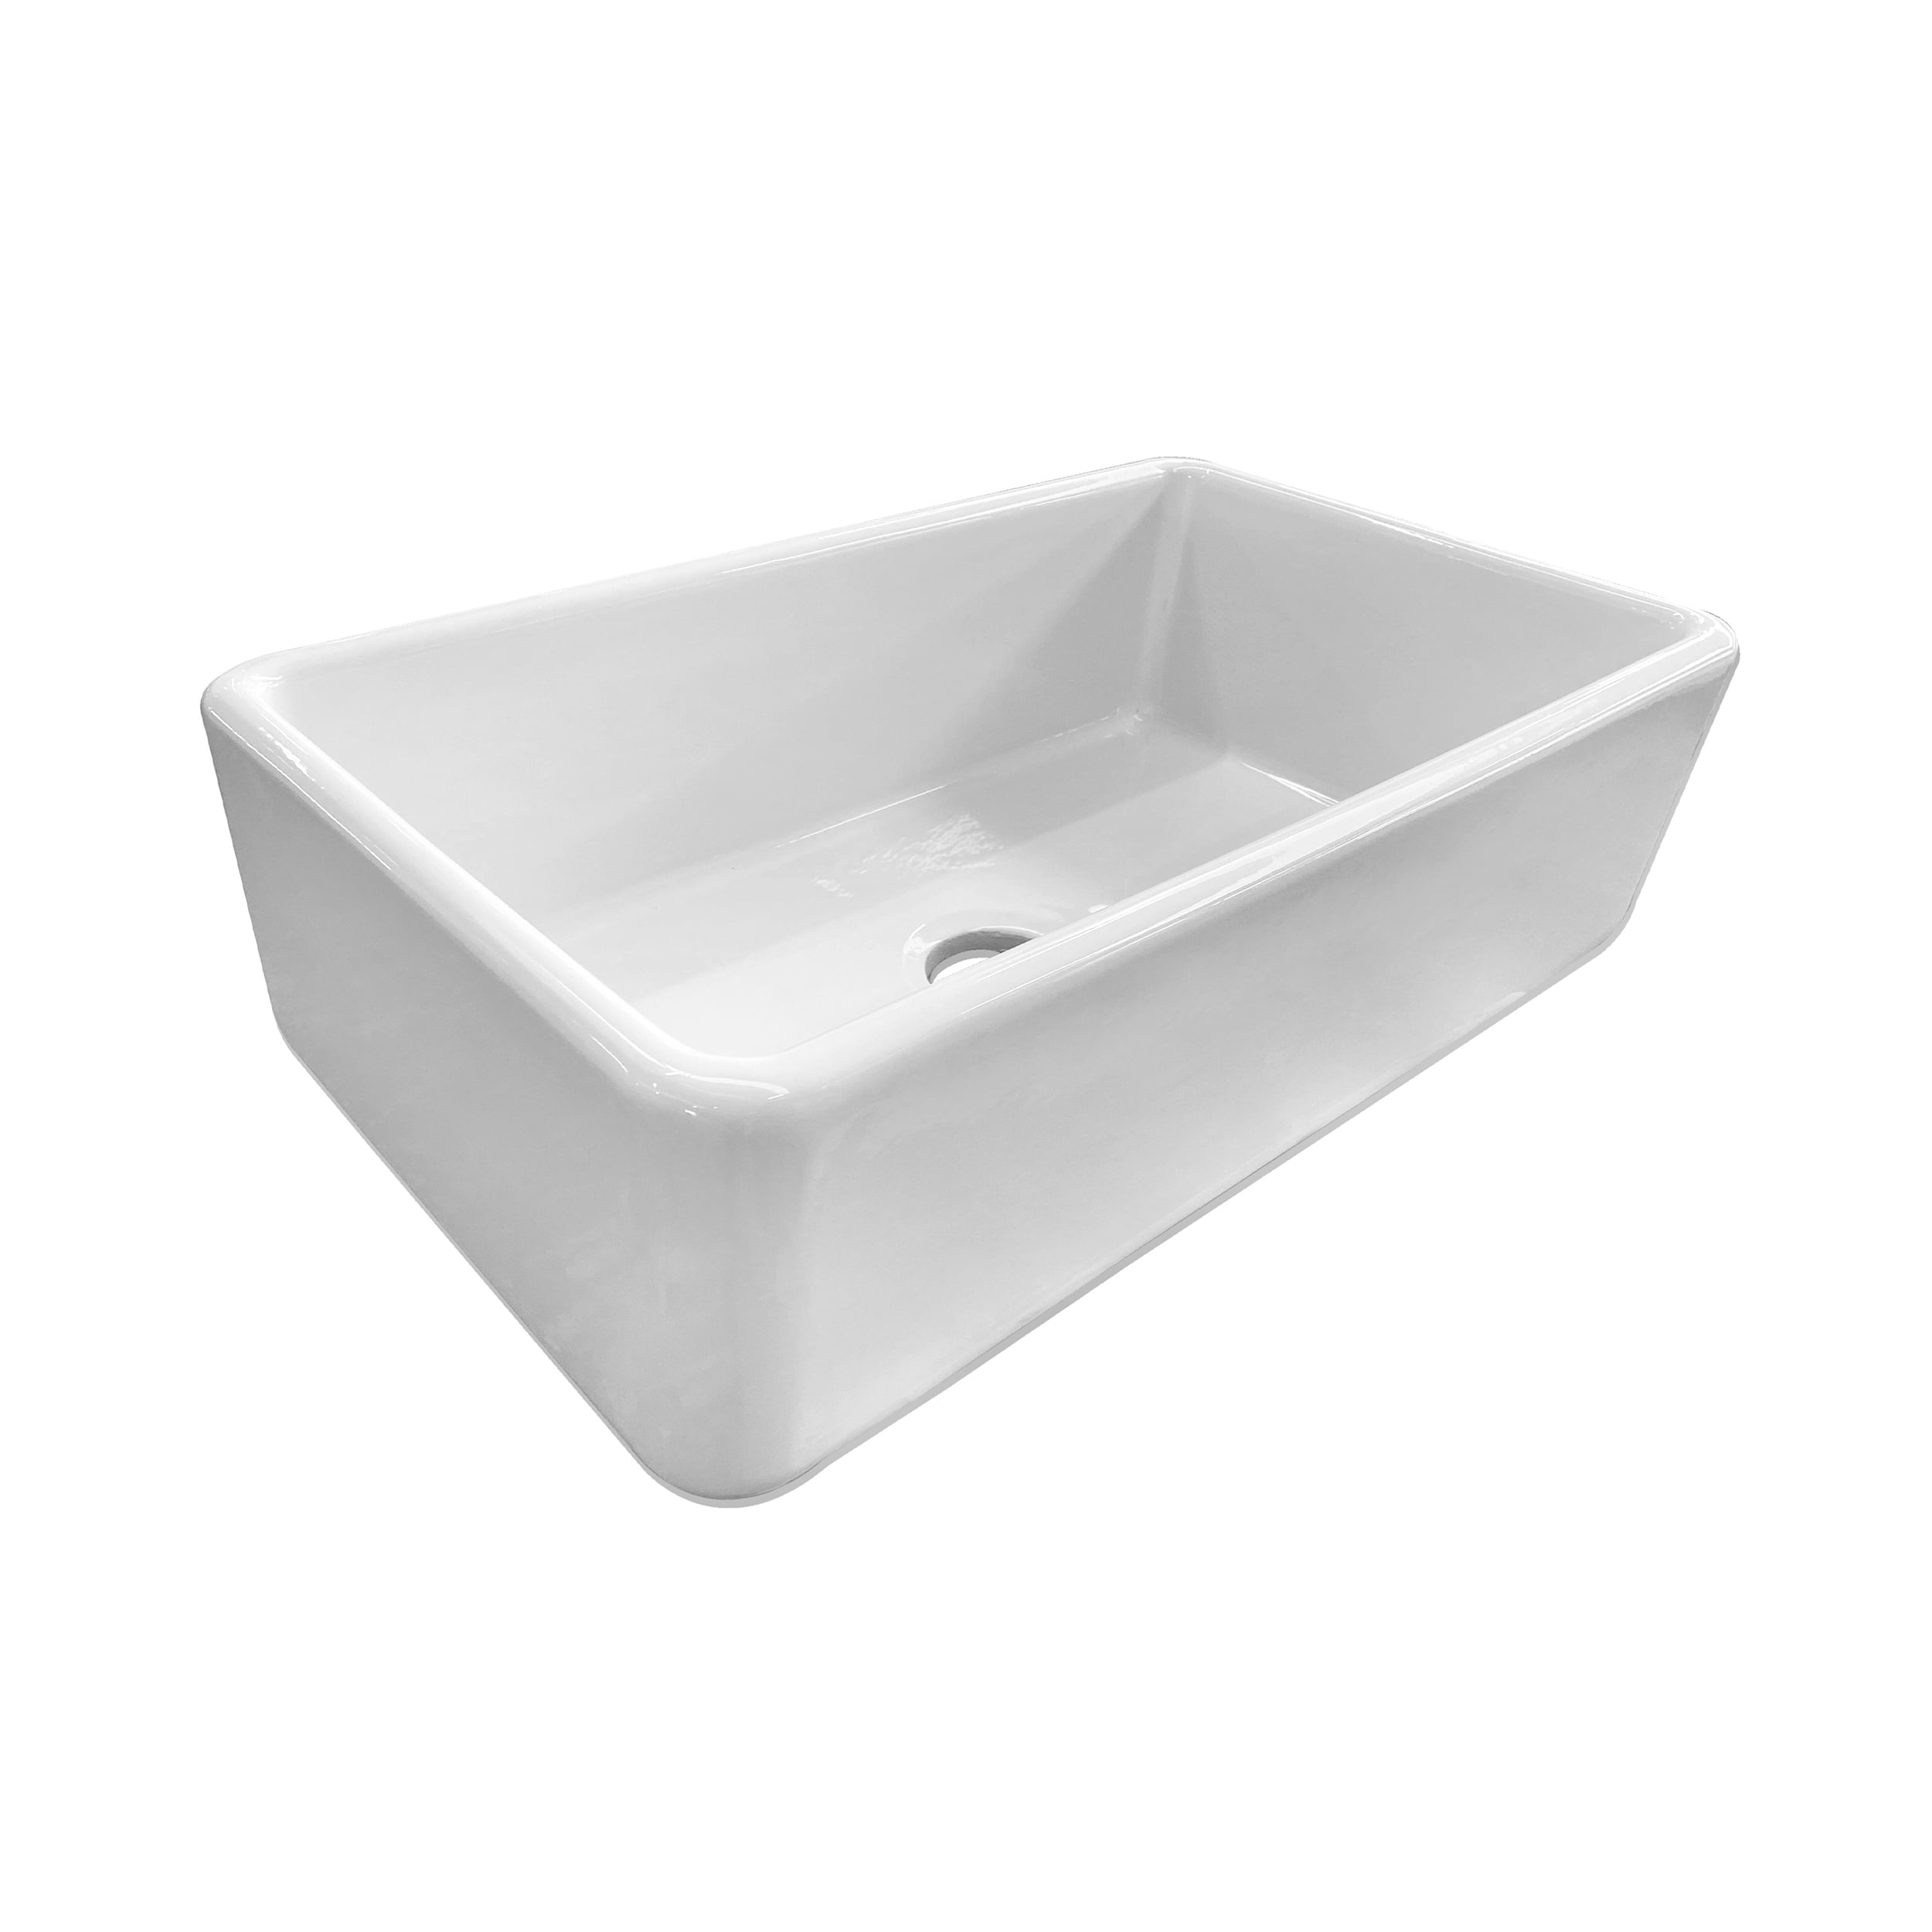 Front of the Samlesbury, a large single bowl sink.